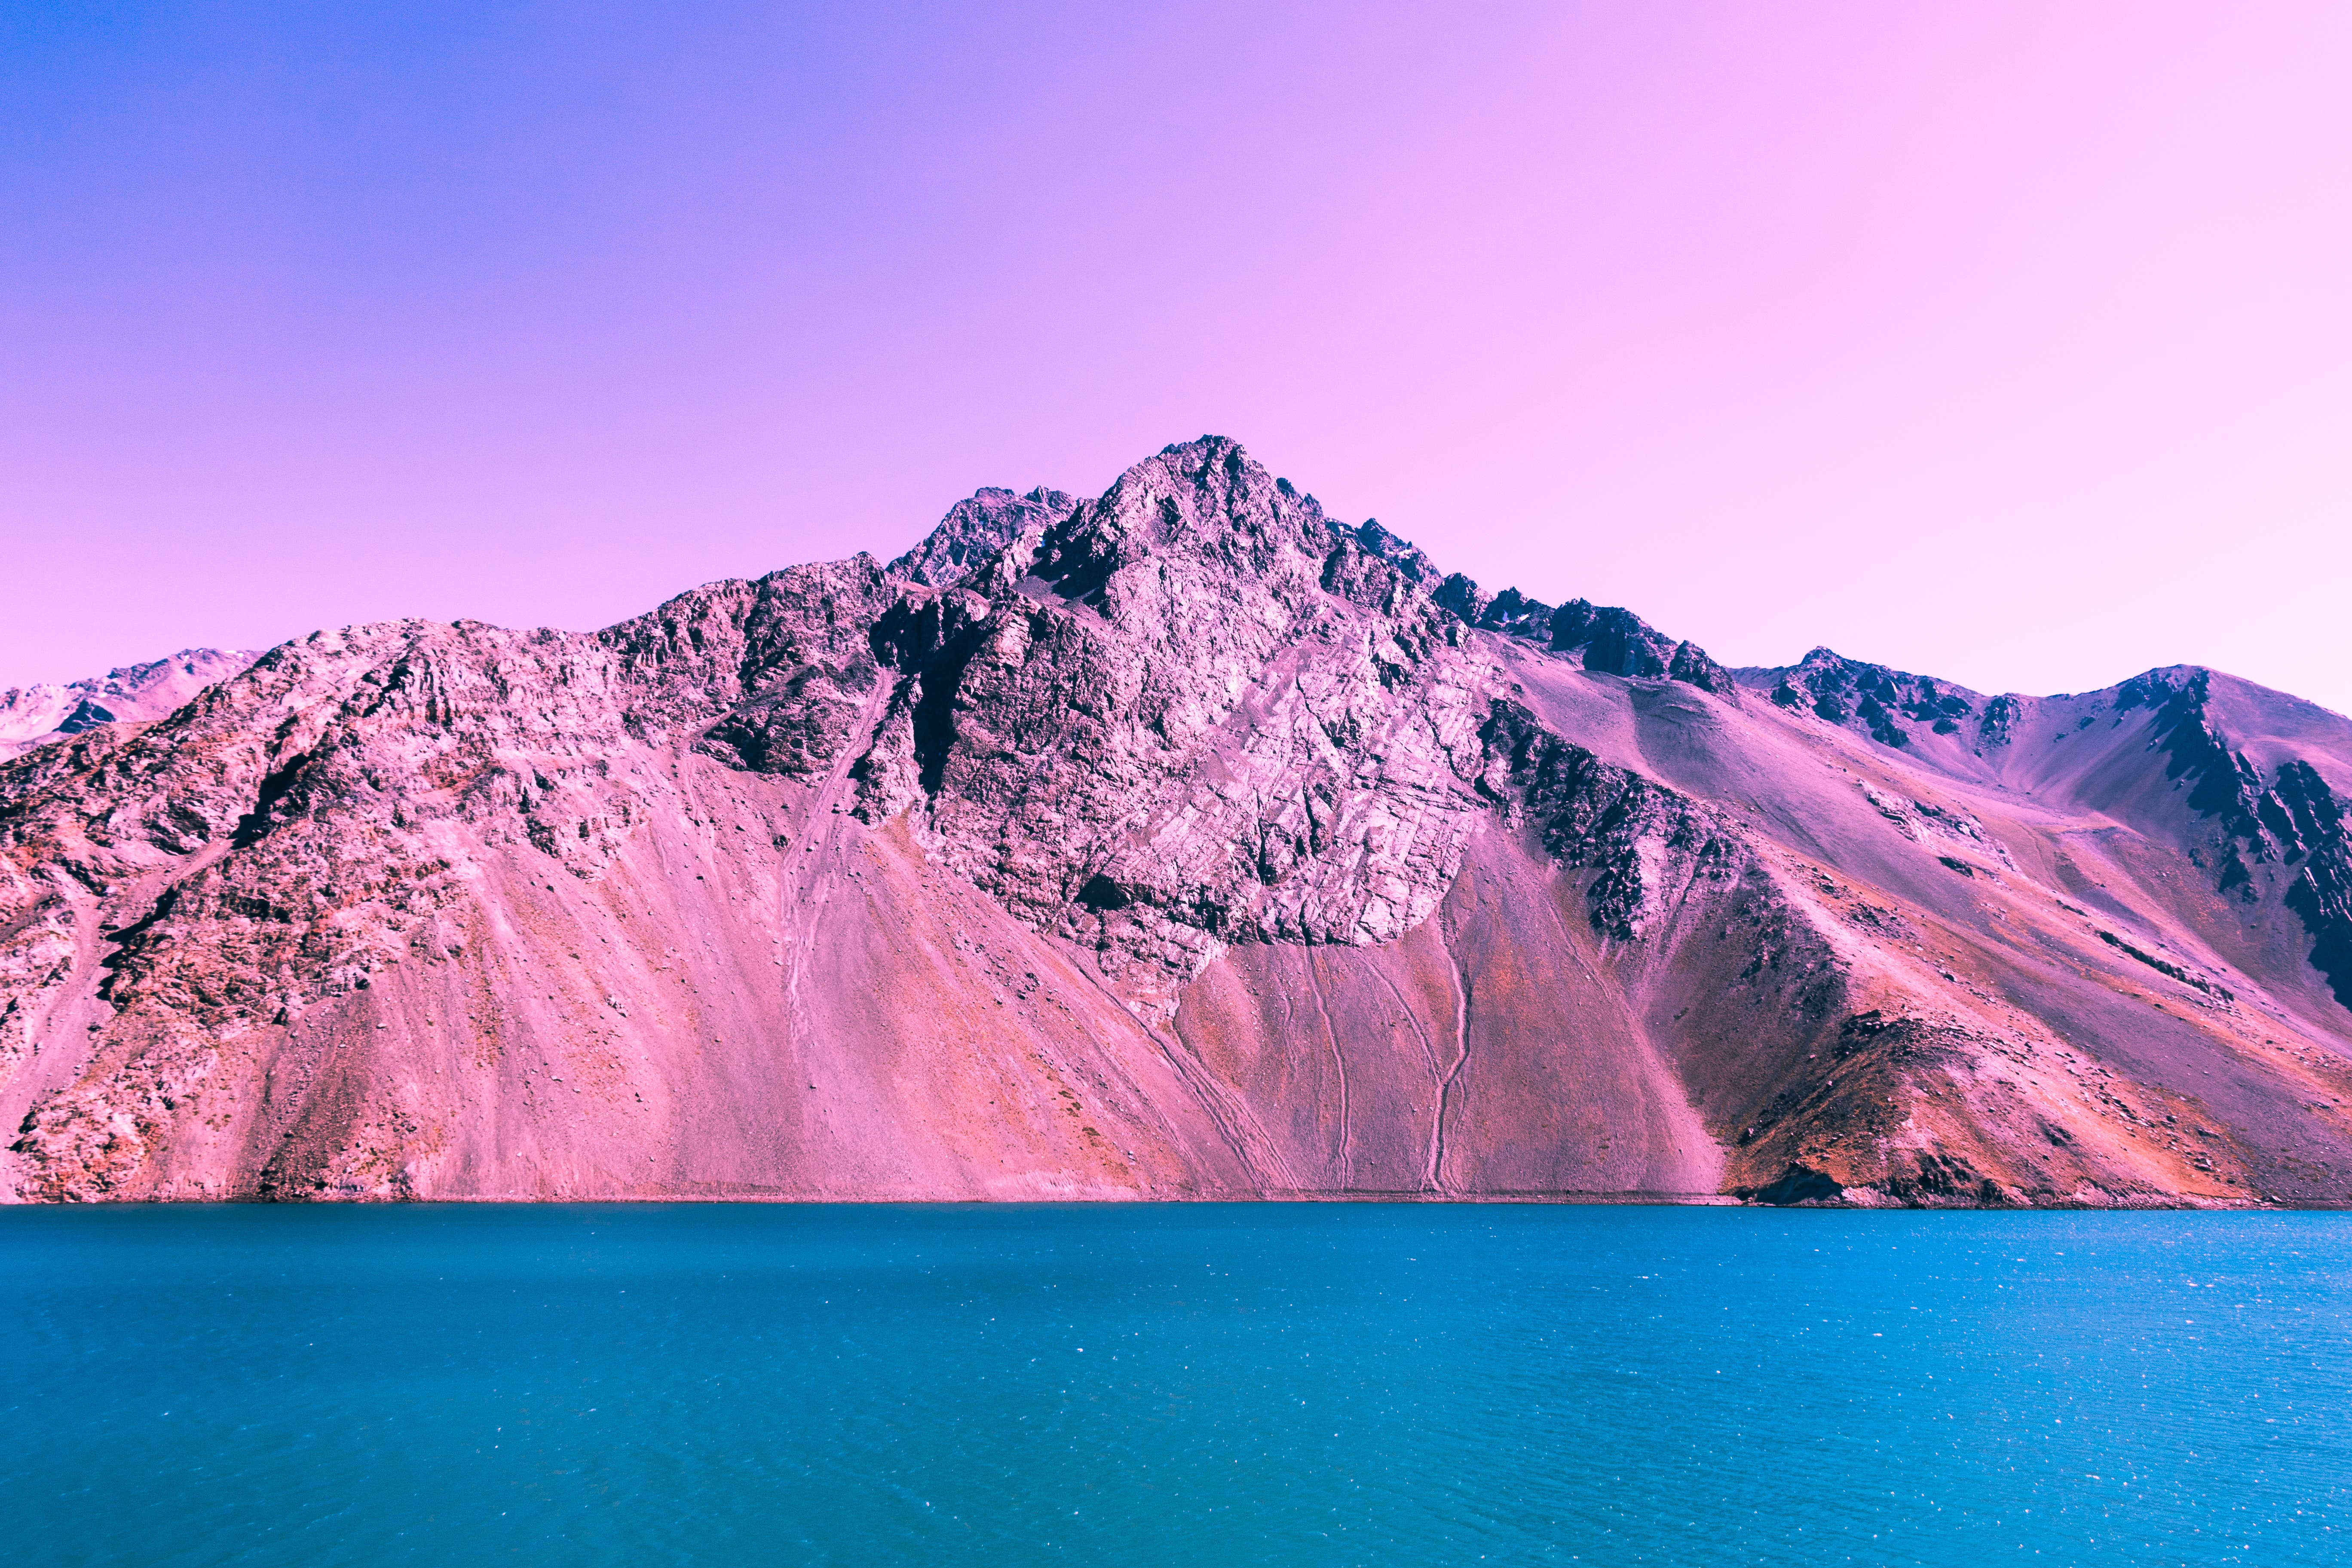 Pink and purple mountain ridge by a blue lake